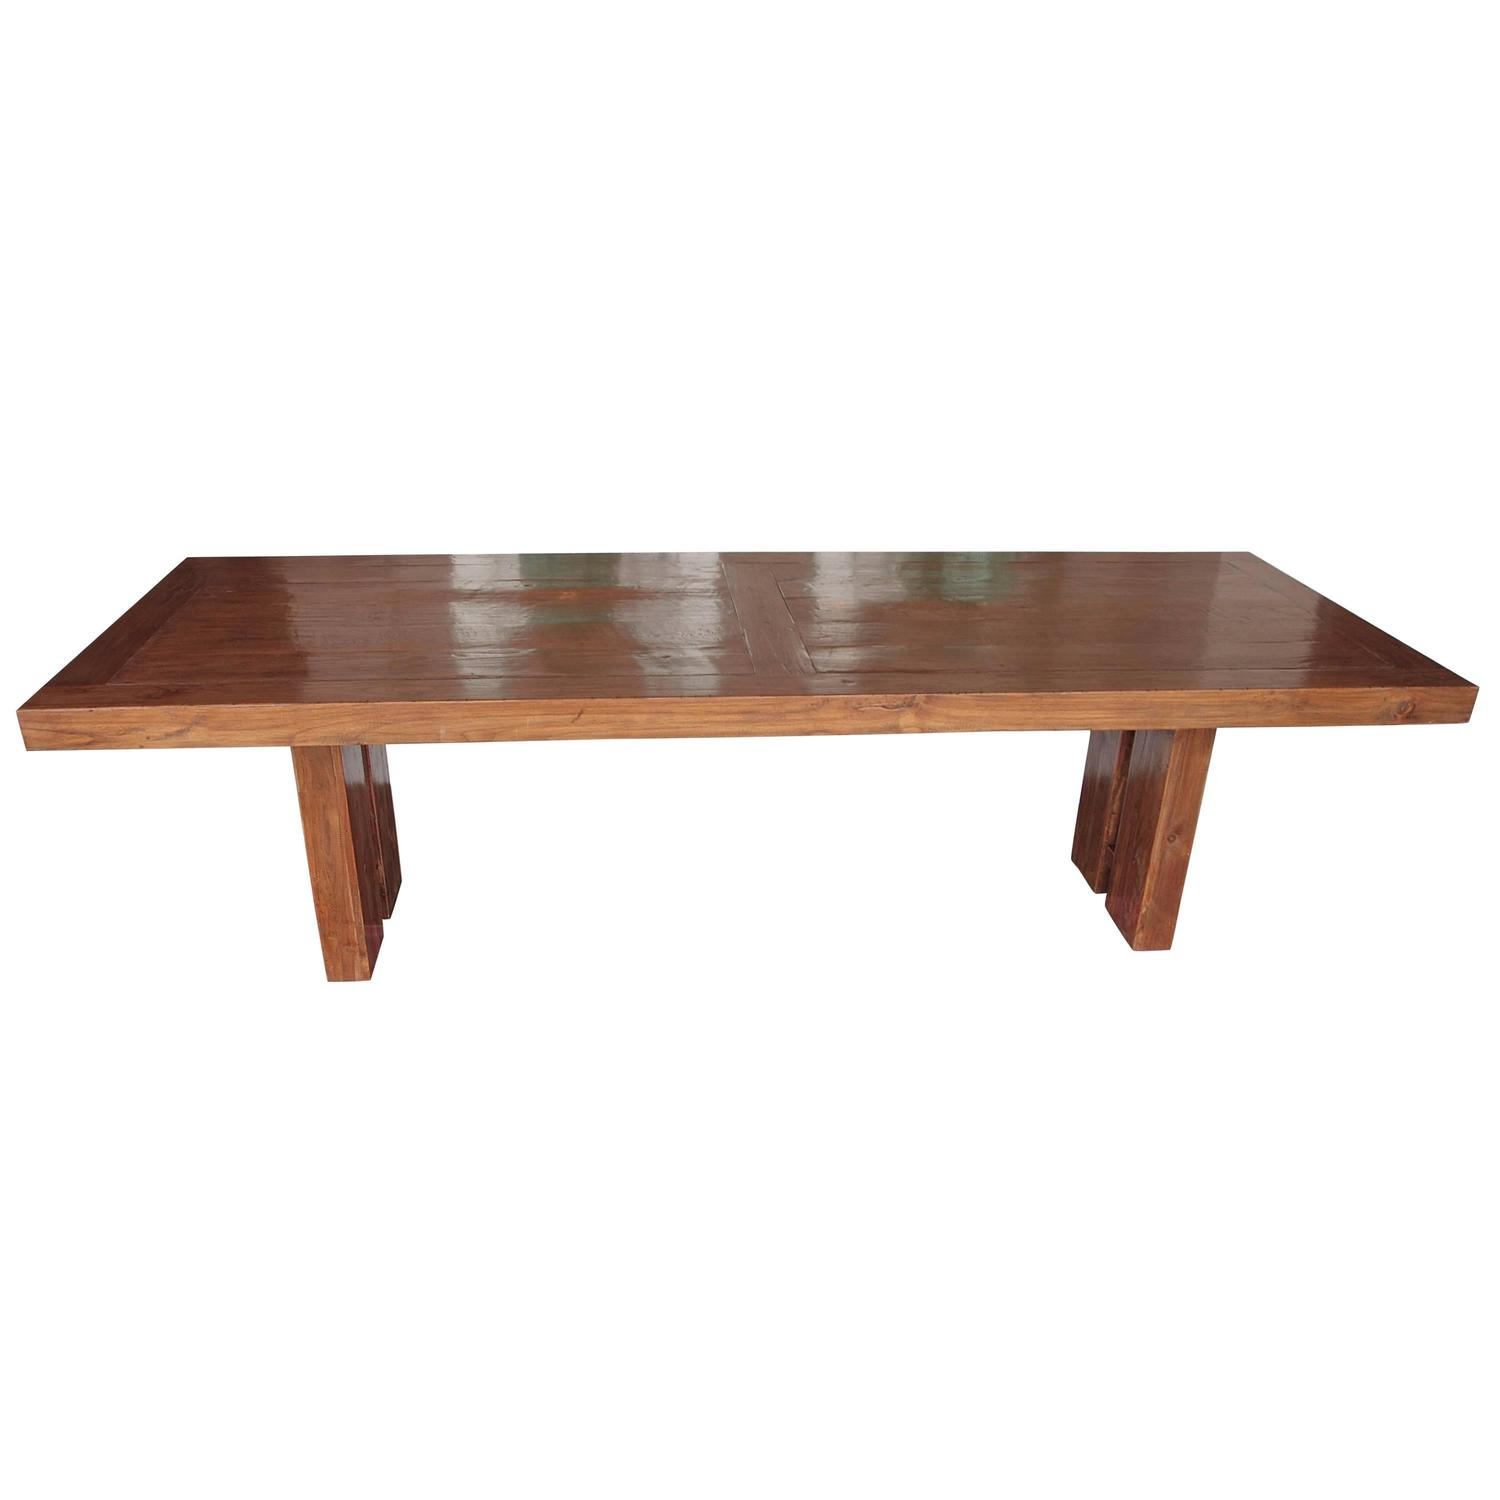 Transitional solid teak wood dining table at 1stdibs for Solid wood dining table